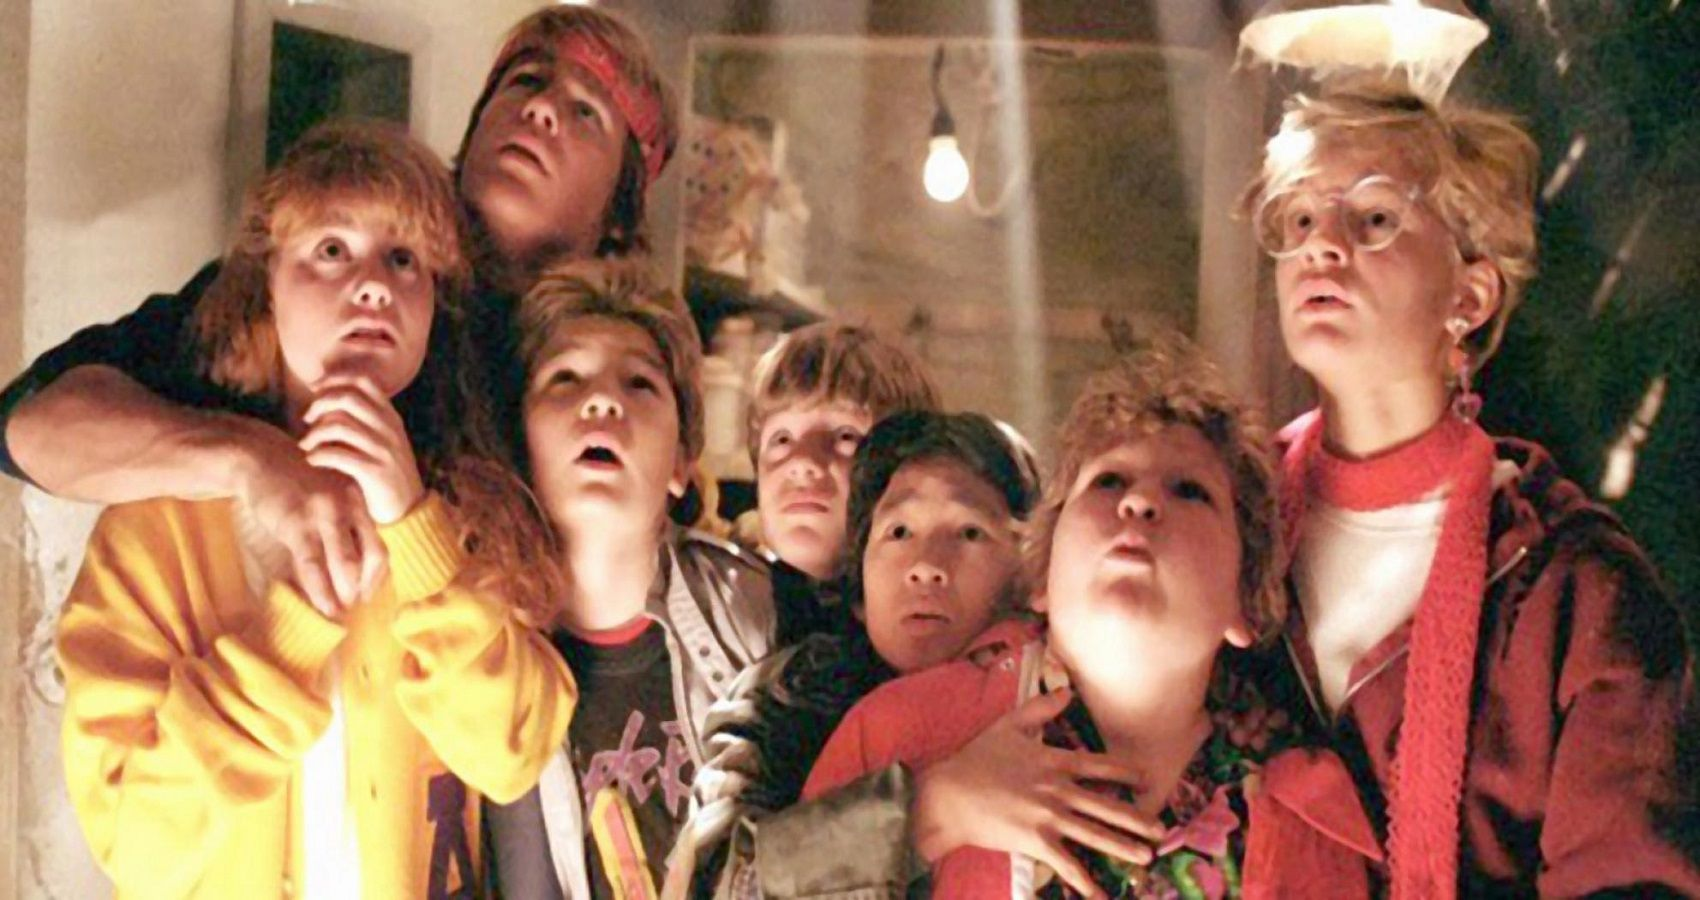 15 Of The Best Quotes From The Goonies | ScreenRant